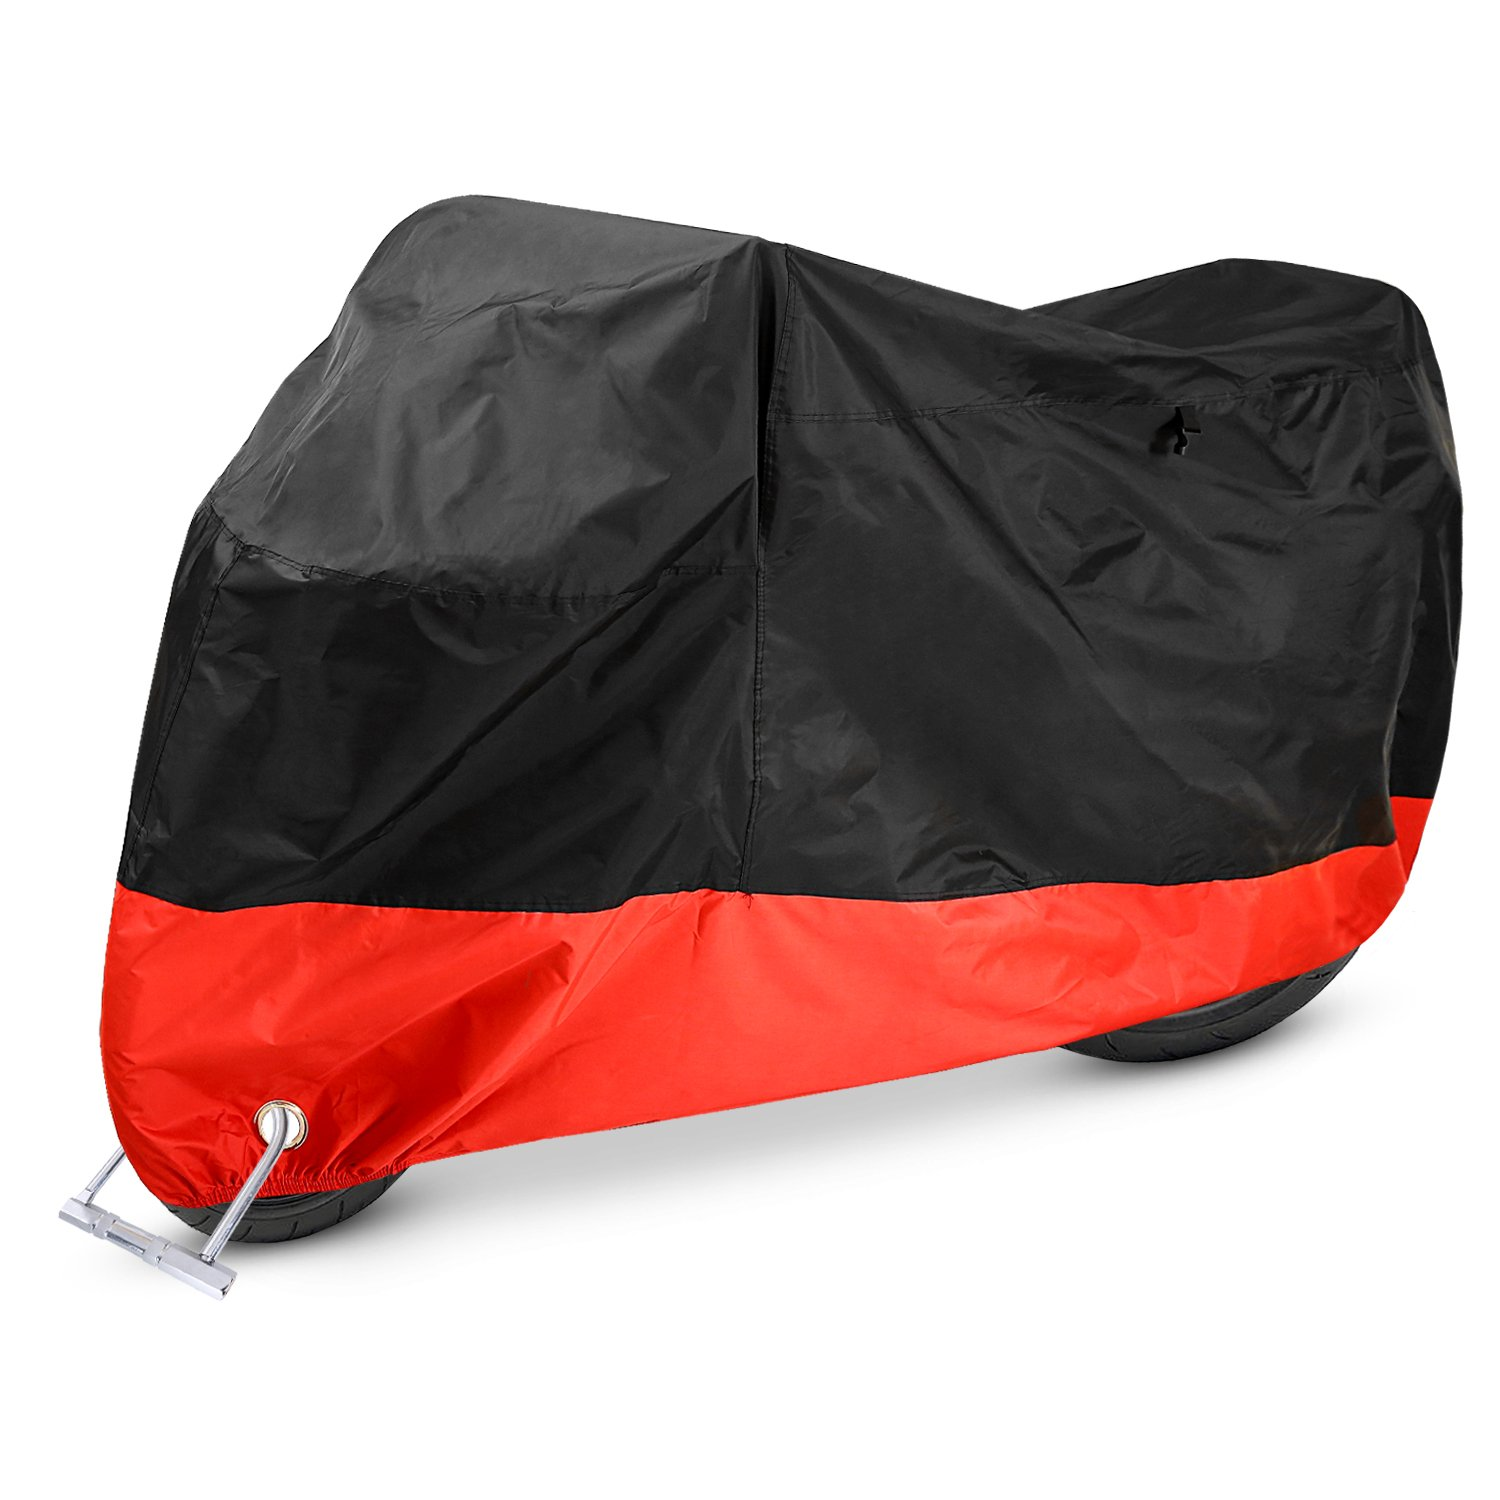 Motorcycle Cover Waterproof Ohuhu 210D Oxford Motorcycle Cover, Fits up to 108'' Motors, 2 Anti-theft Lock-holes Design, Durable & Tear Proof, for Honda, Yamaha, Suzuki, Harley and More